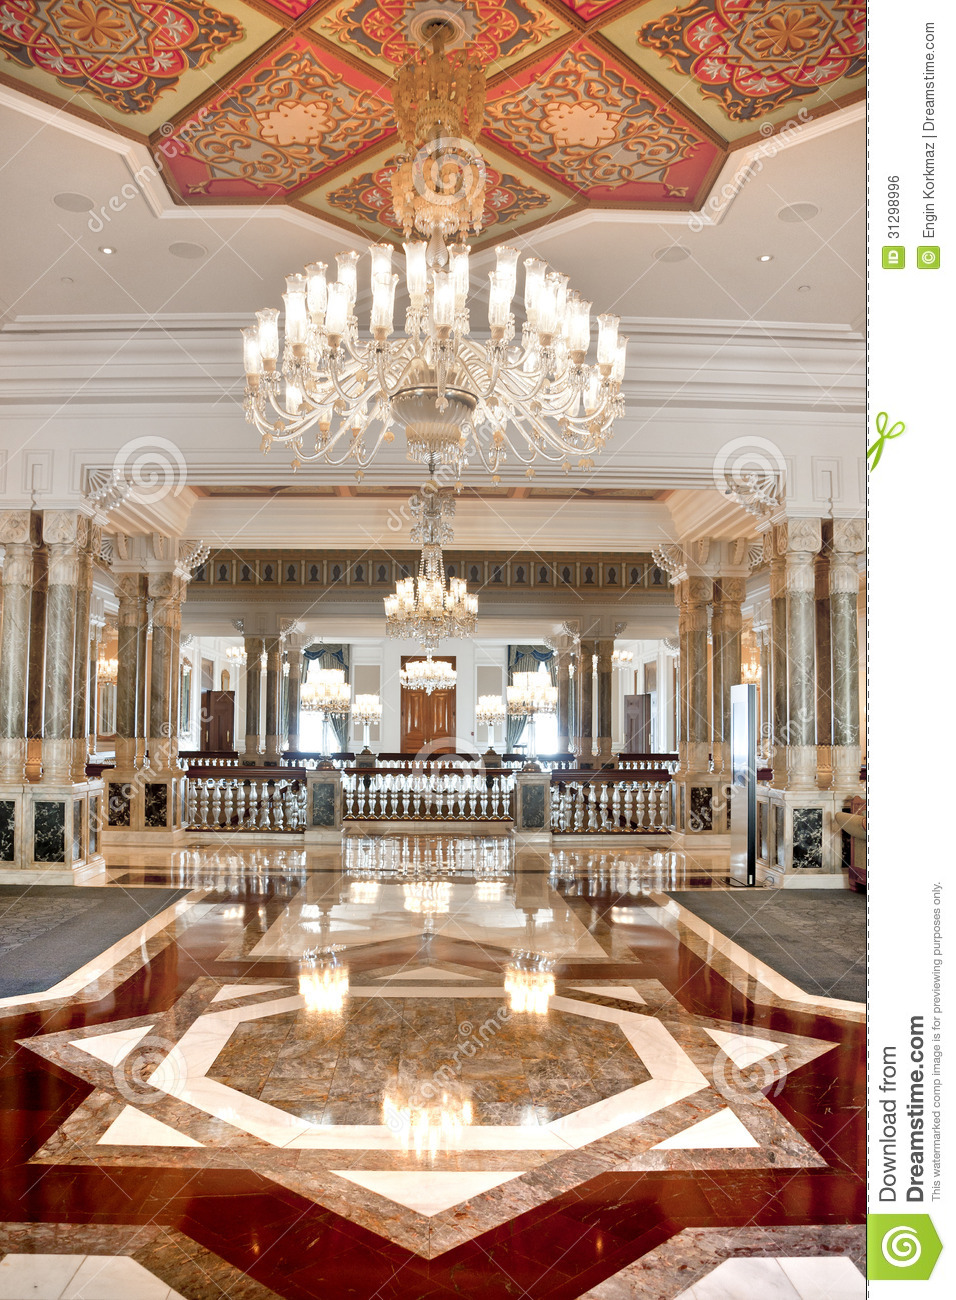 Image Result For Old Country House Interior